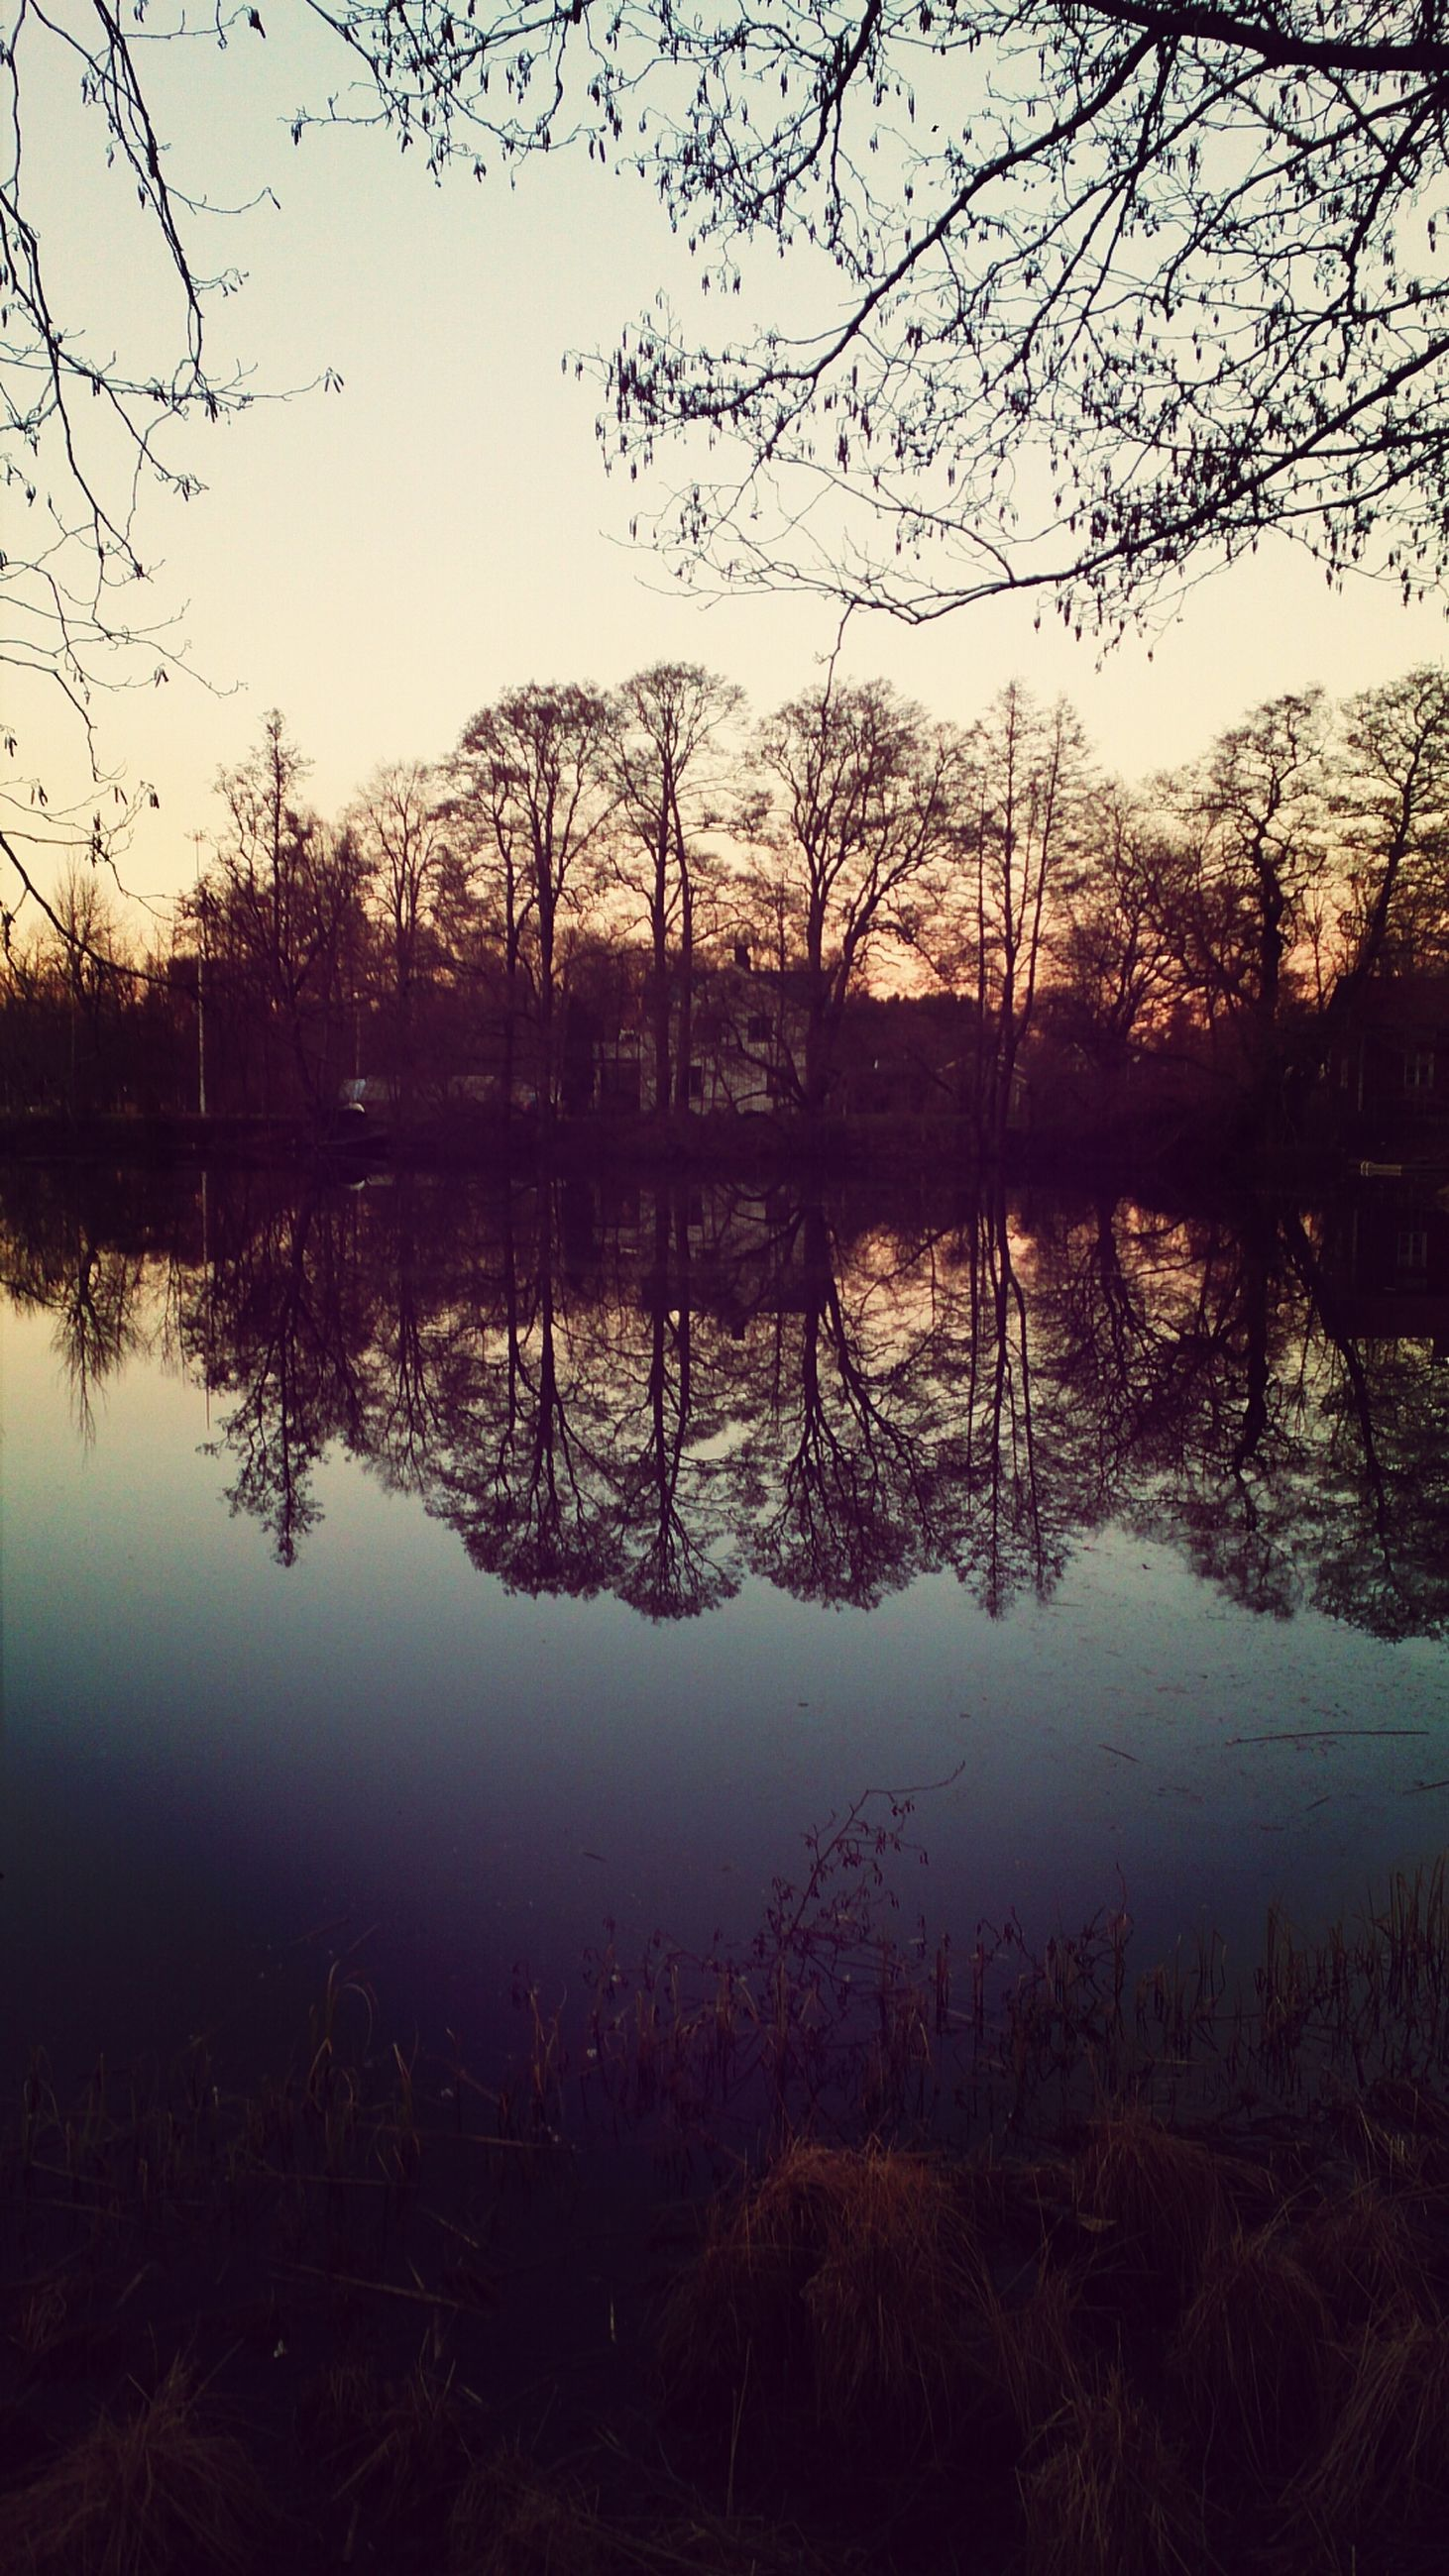 reflection, water, lake, tranquility, tranquil scene, scenics, tree, sunset, clear sky, beauty in nature, silhouette, standing water, nature, idyllic, sky, calm, lakeshore, branch, bare tree, waterfront